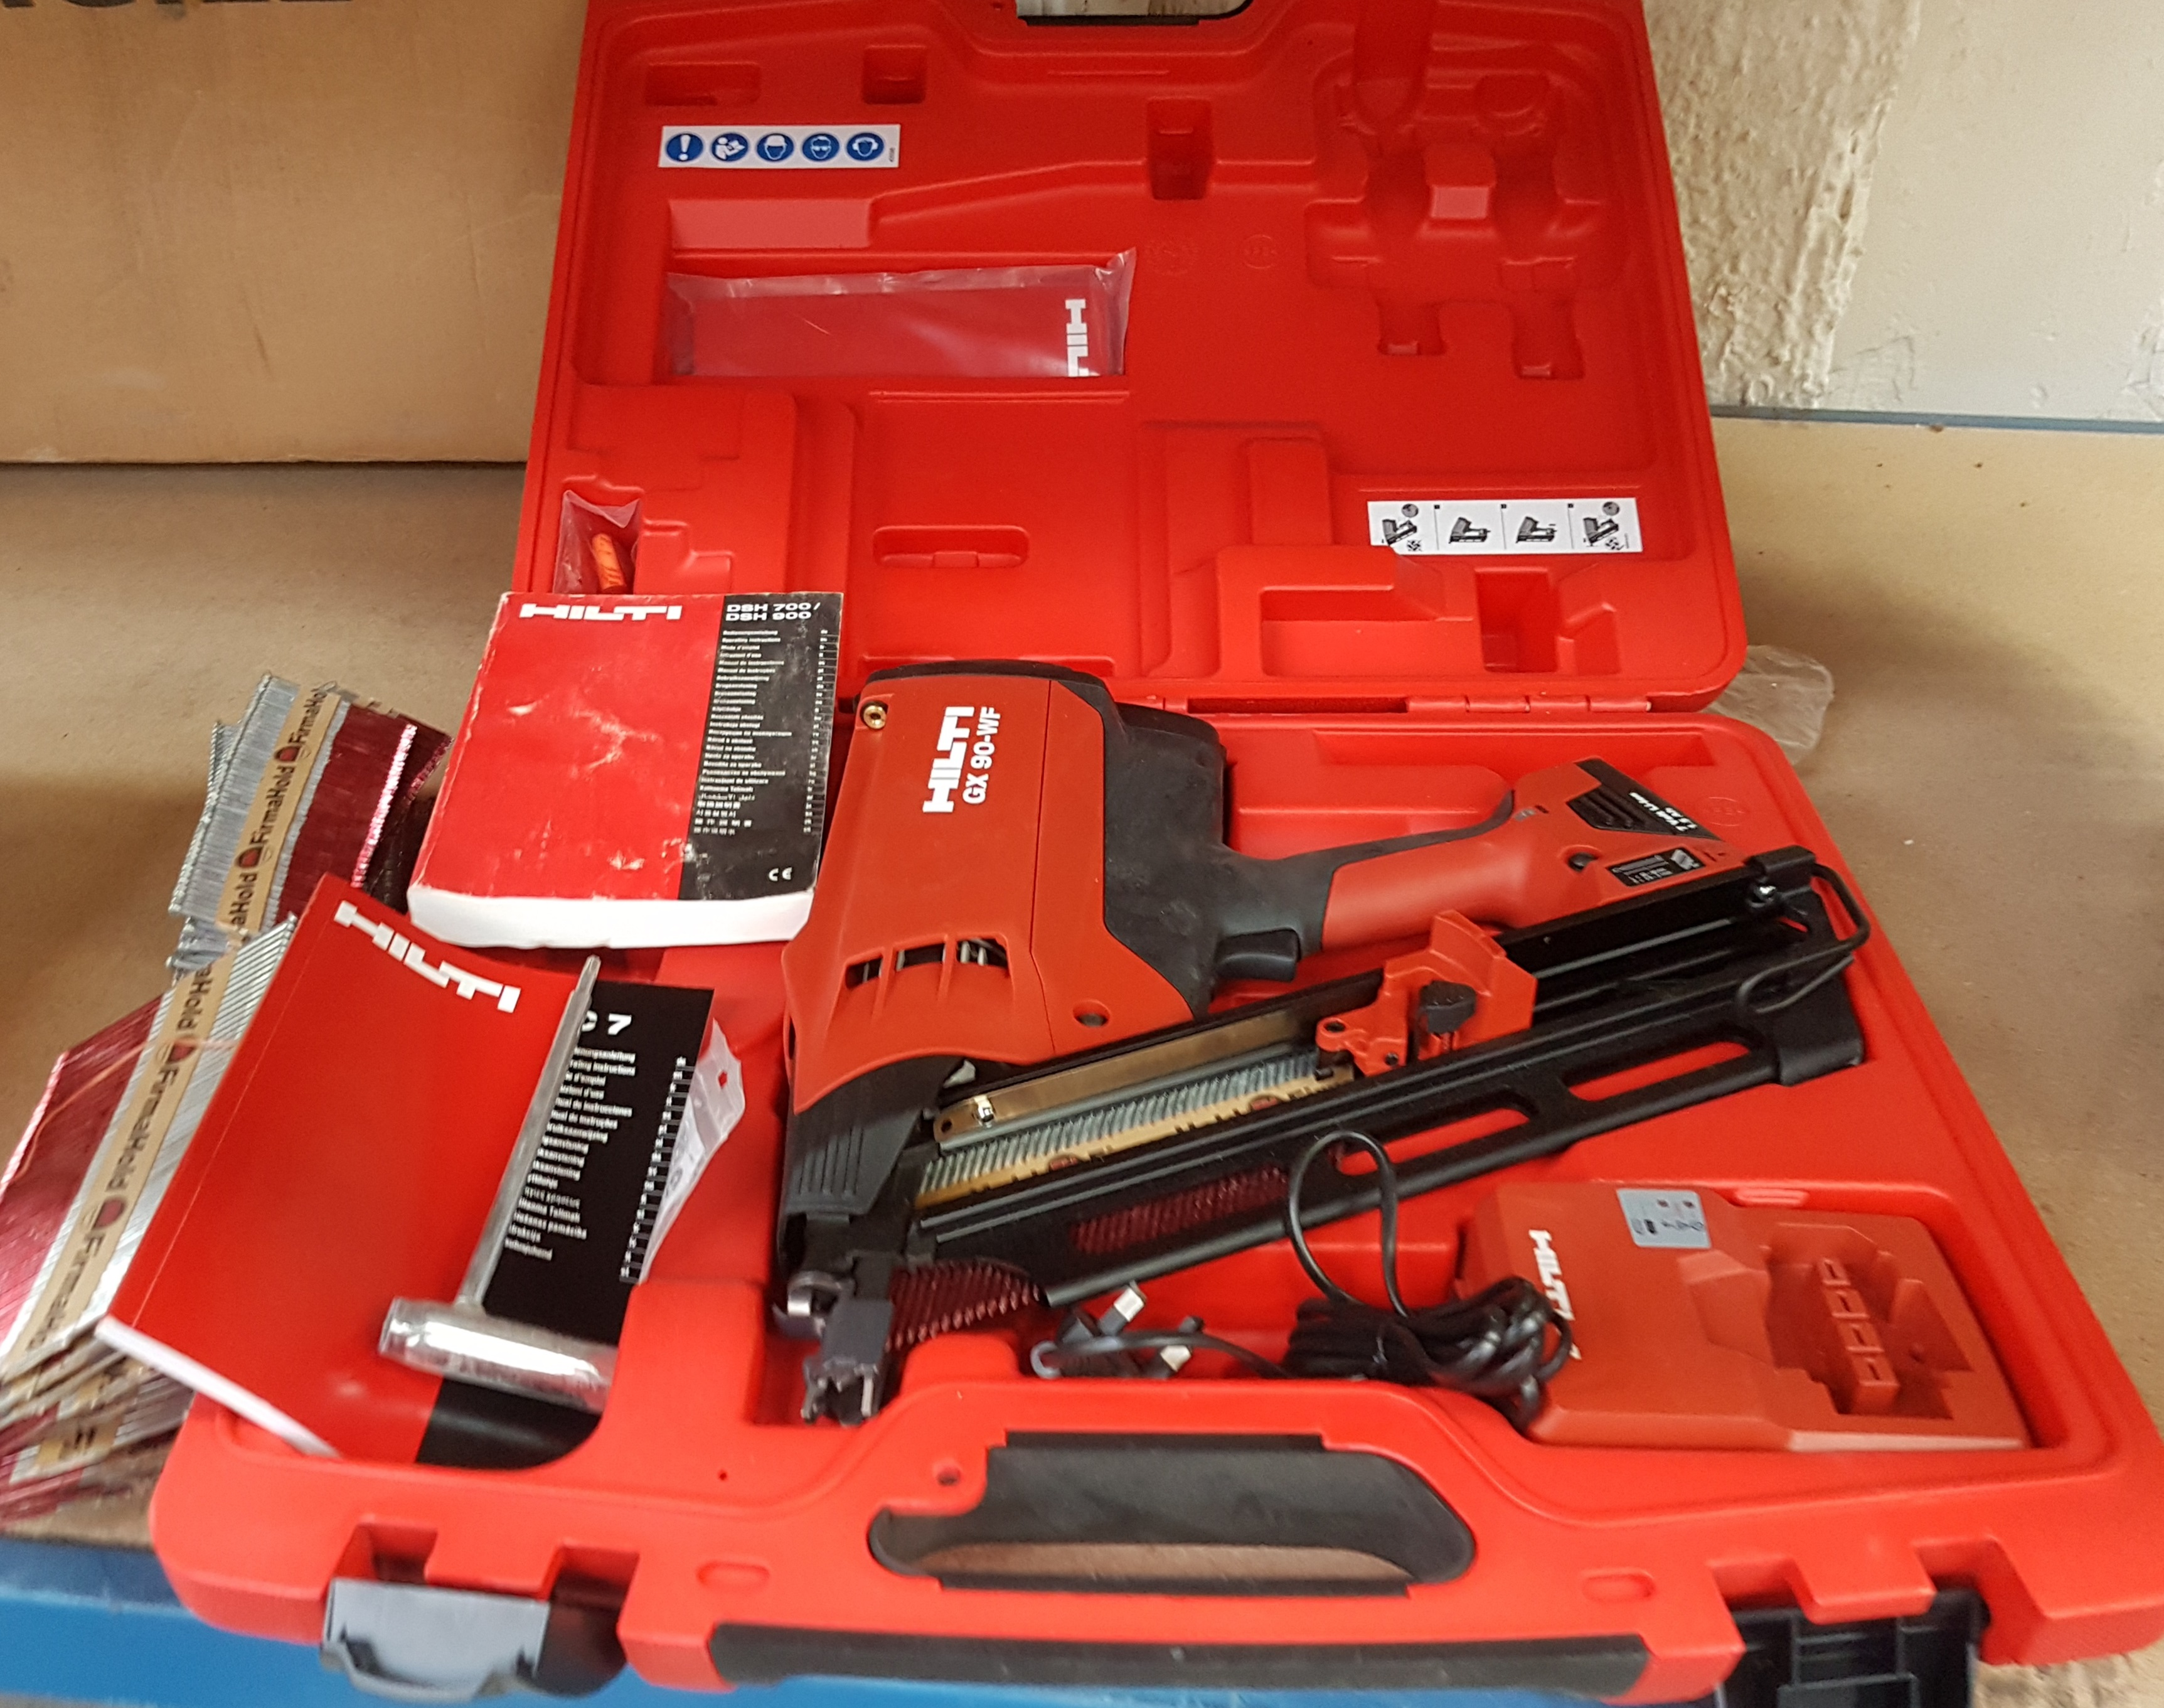 Lot 122   1 X Hilti GX 90 WF Framing Nail Gun   Includes Case